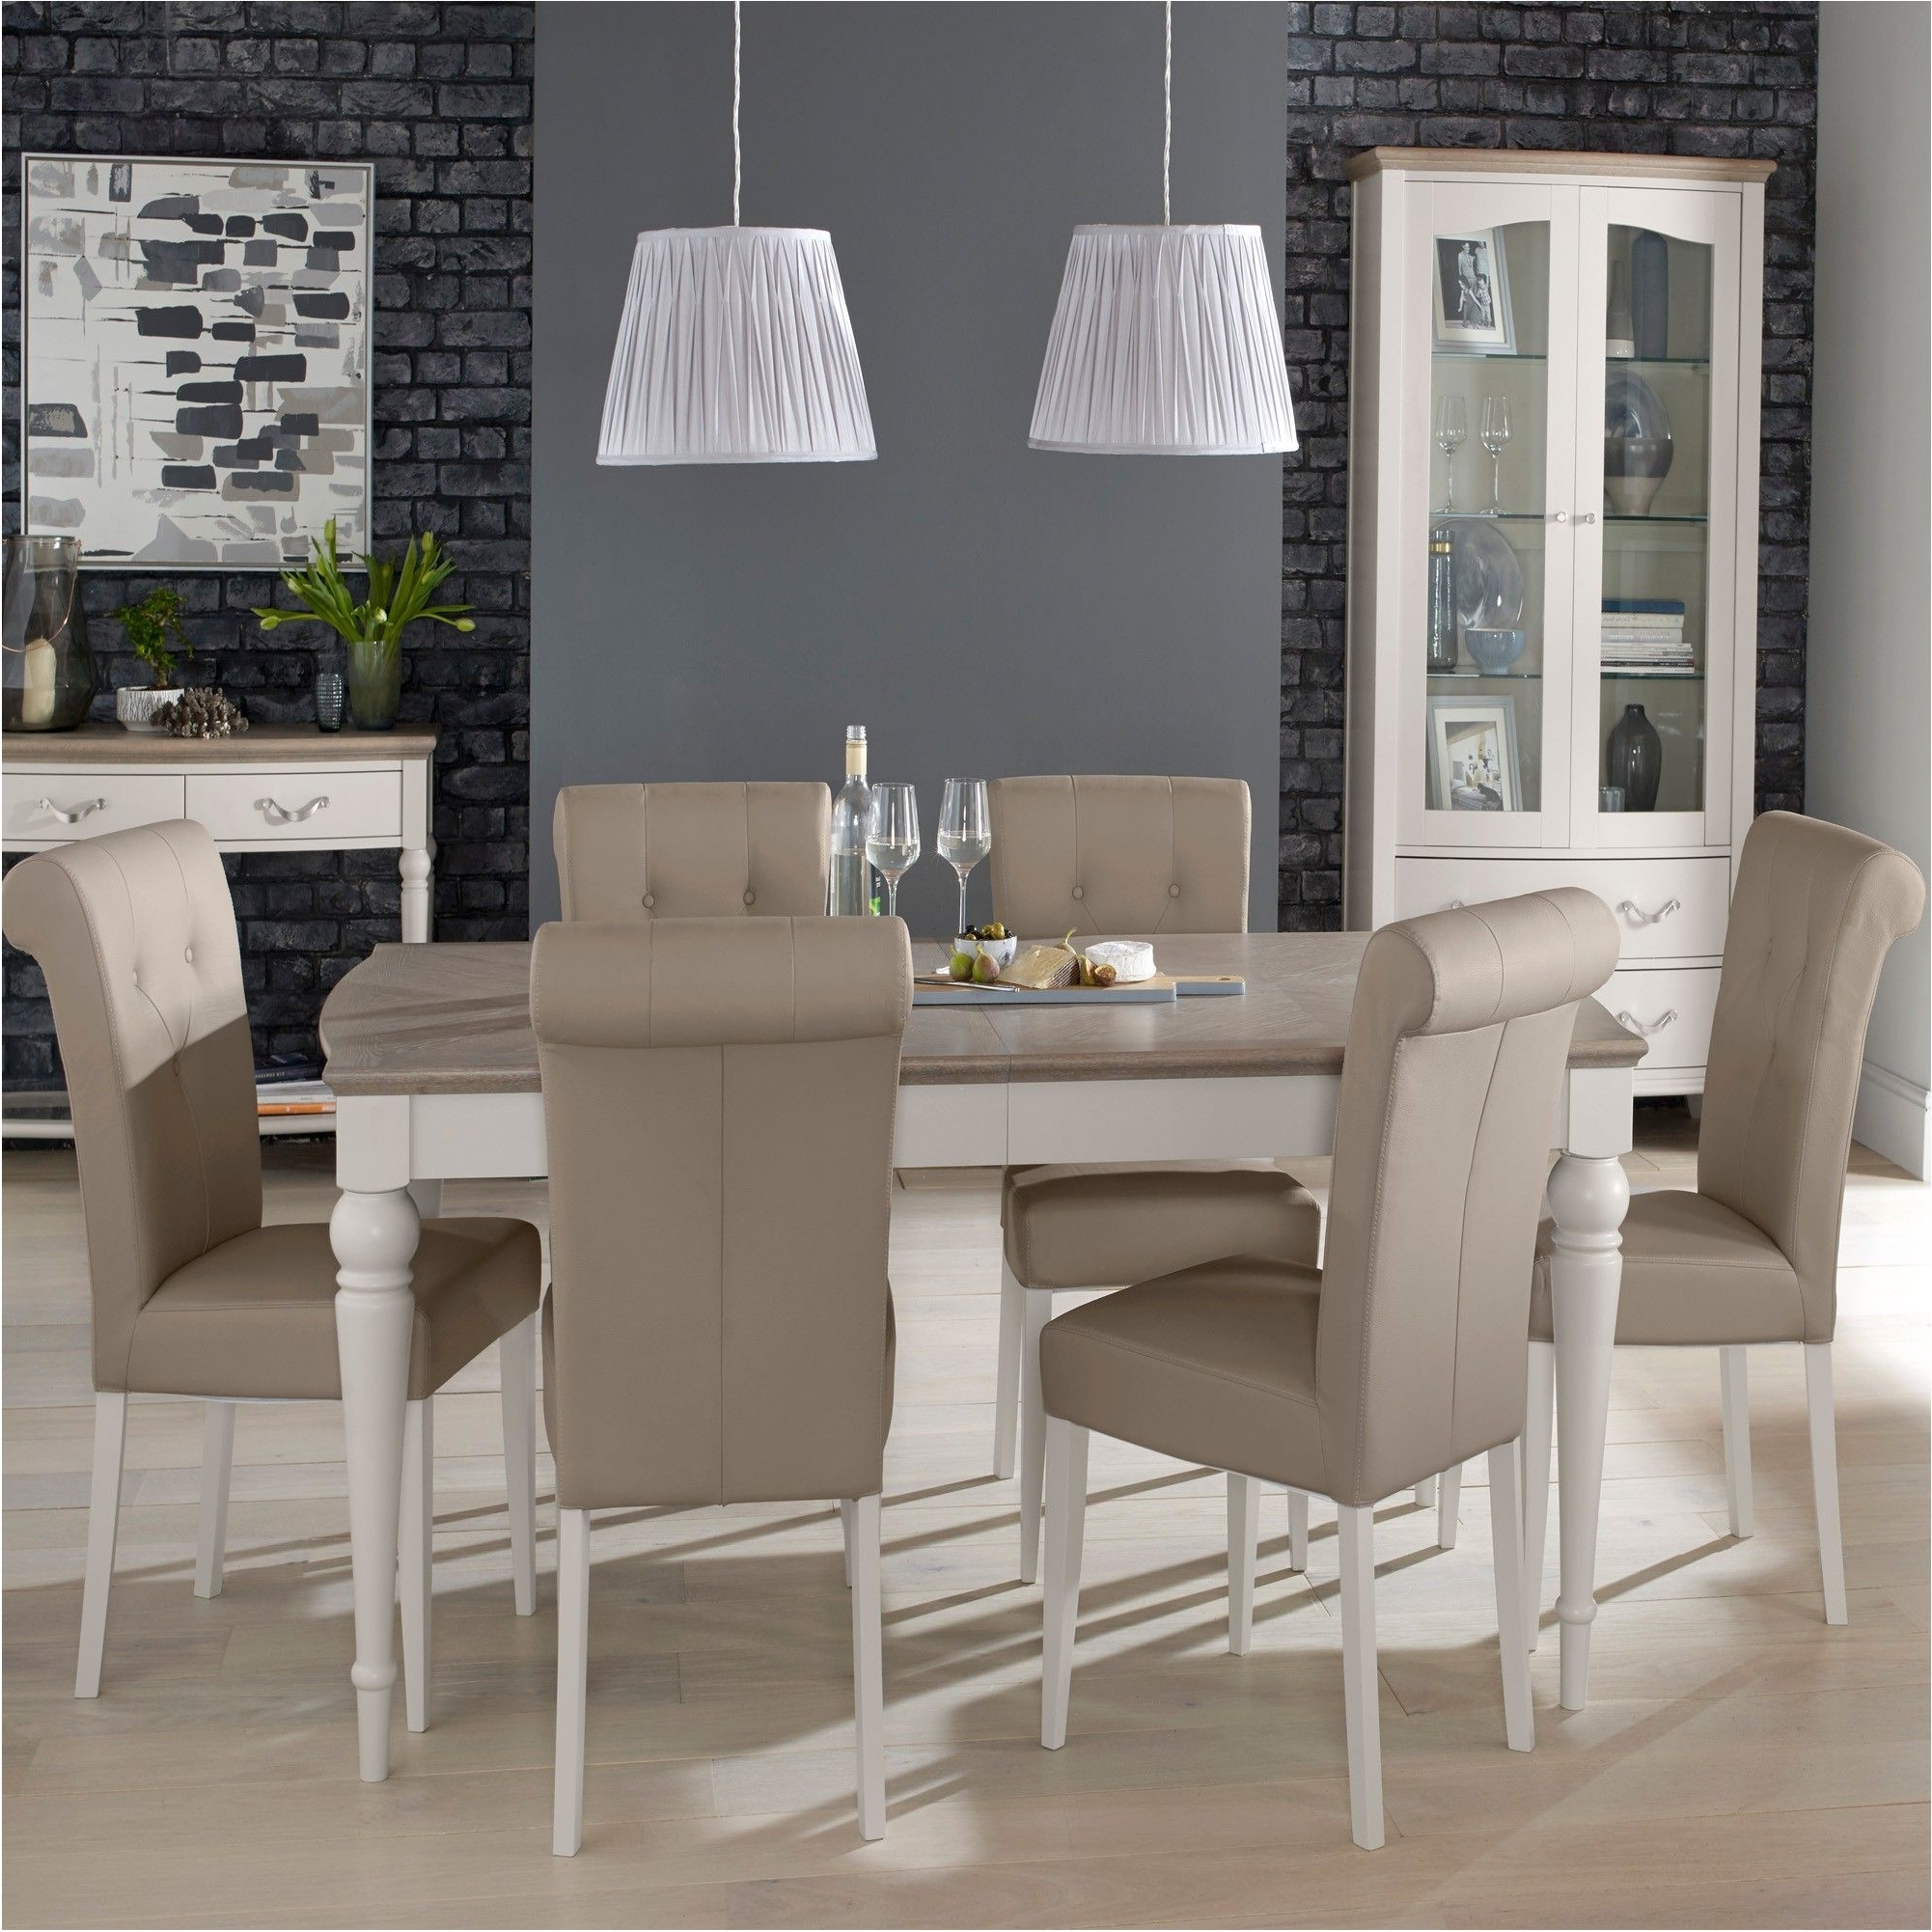 Preferred 6 Chairs And Dining Tables With Regard To Magnificent Collection Geneva Dining Table And 6 Chairs Dining Sets (View 22 of 25)